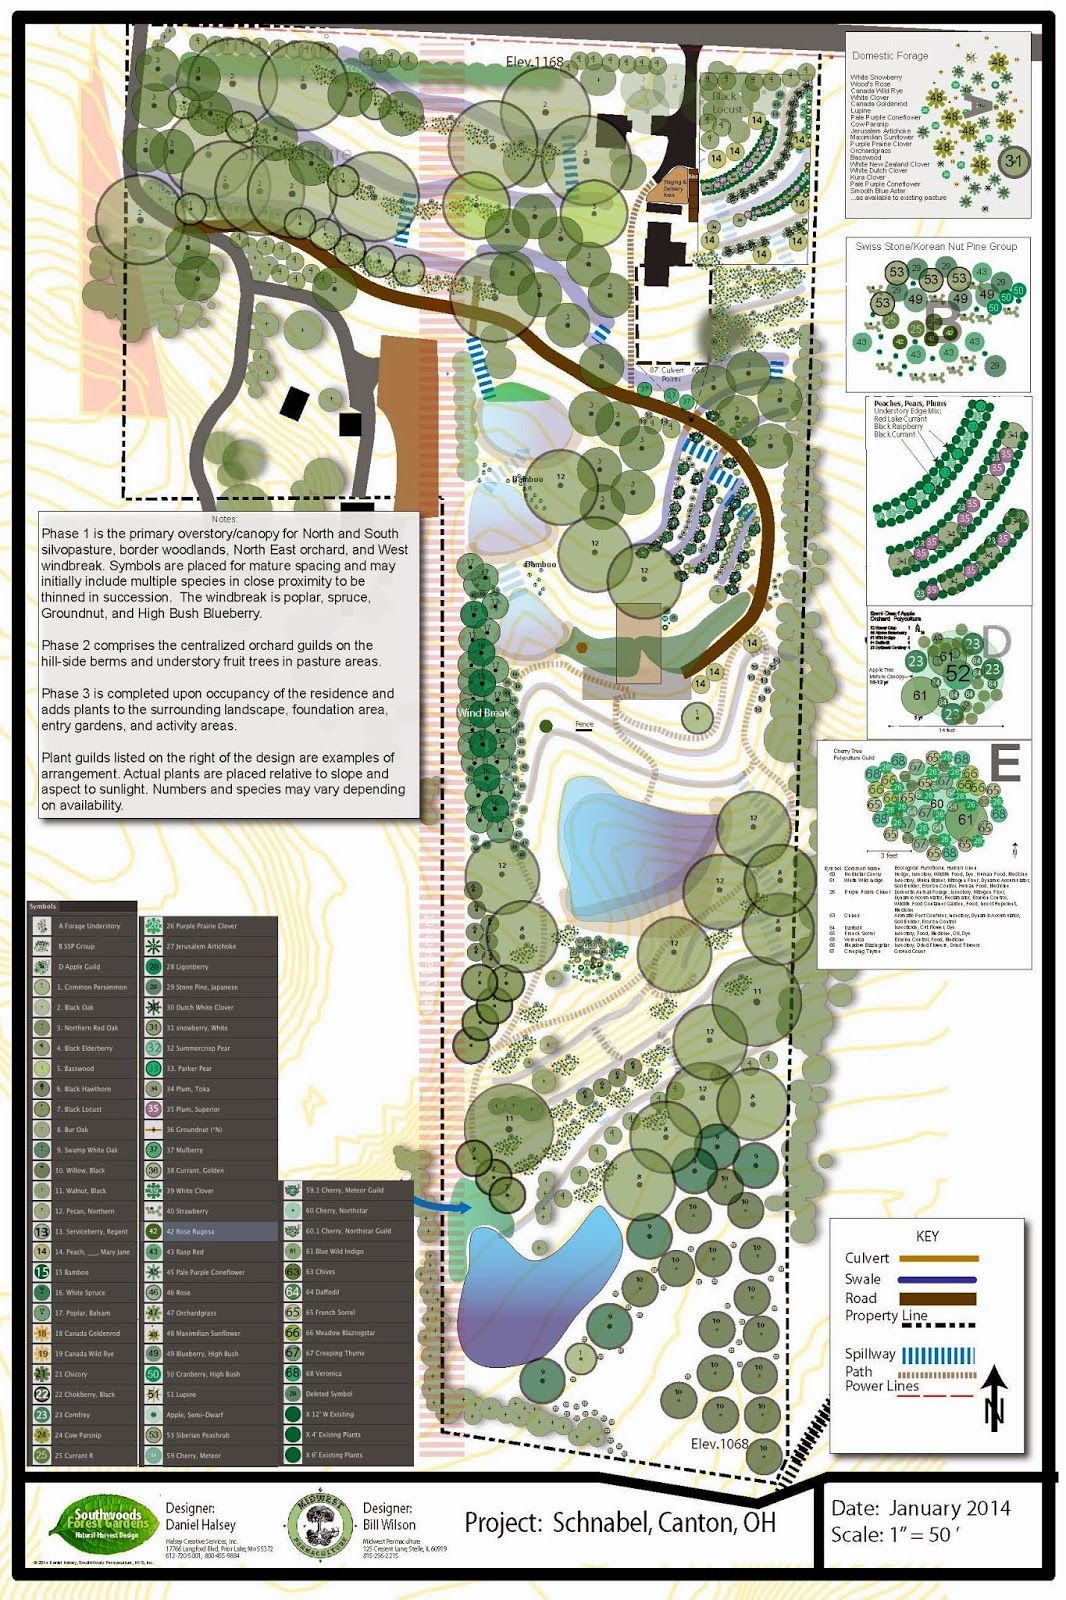 Mandala Market Gardens The Layout: PERMACULTURE AND PERENNIAL FOOD FOREST DESIGN